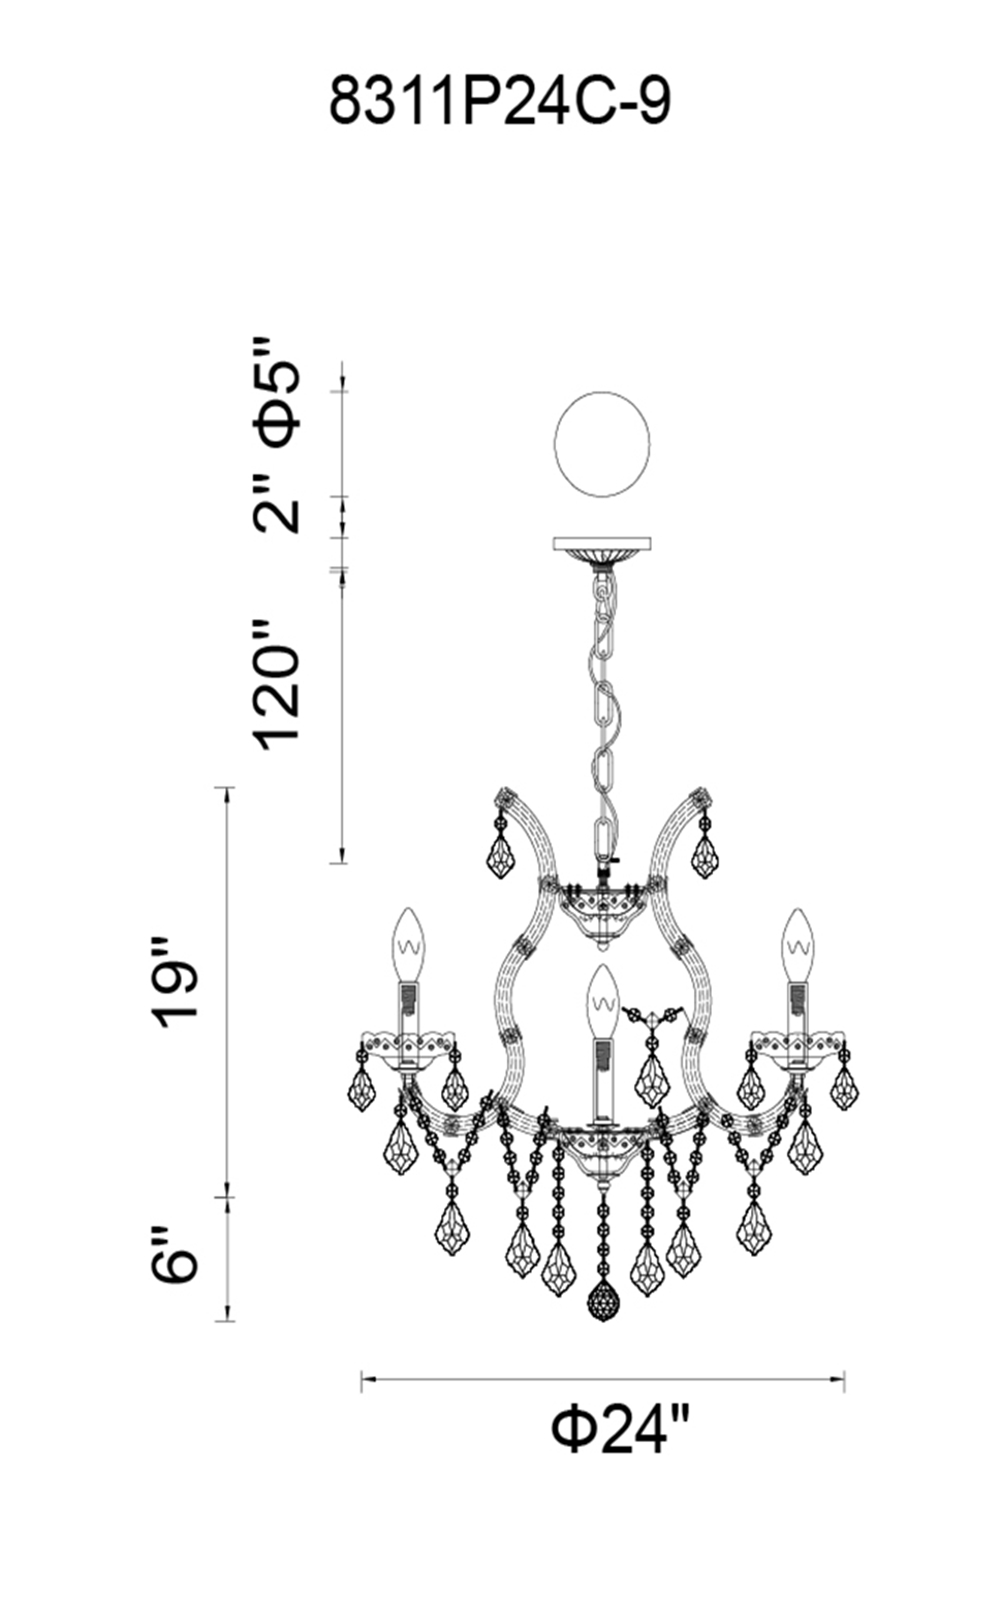 CWI Lighting Maria Theresa 9 Light Up Chandelier With Chrome Finish Model: 8311P24C-9 (CLEAR) Line Drawing